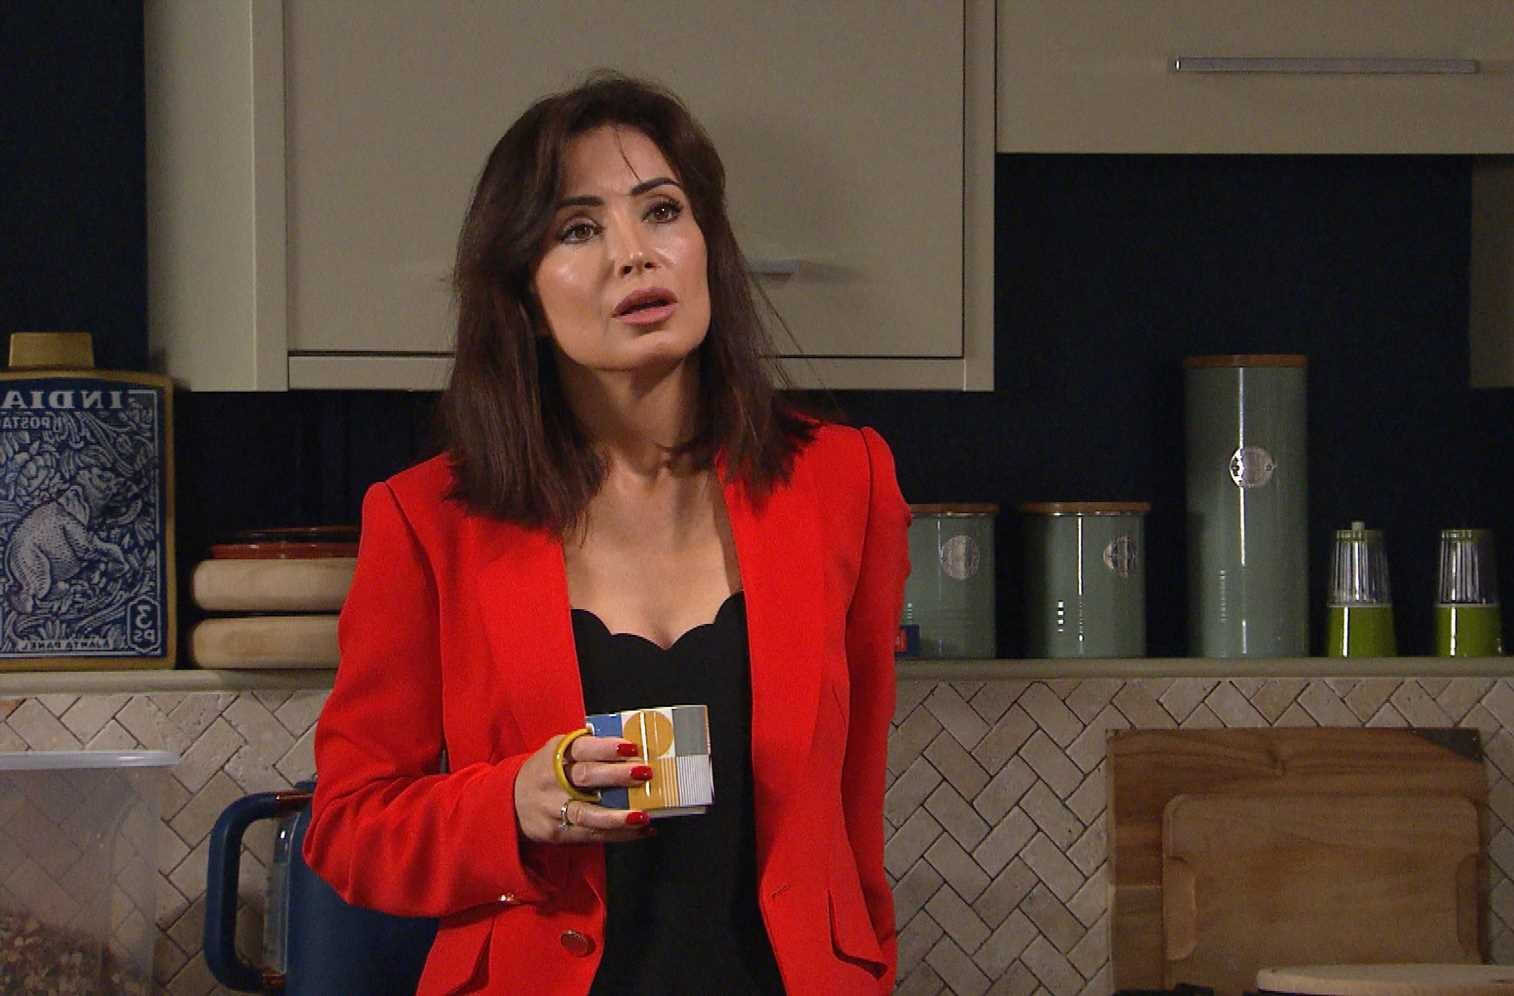 Emmerdale spoilers: Leyla Harding struggles with miscarriage as she refuses to tell husband Liam Cavanagh